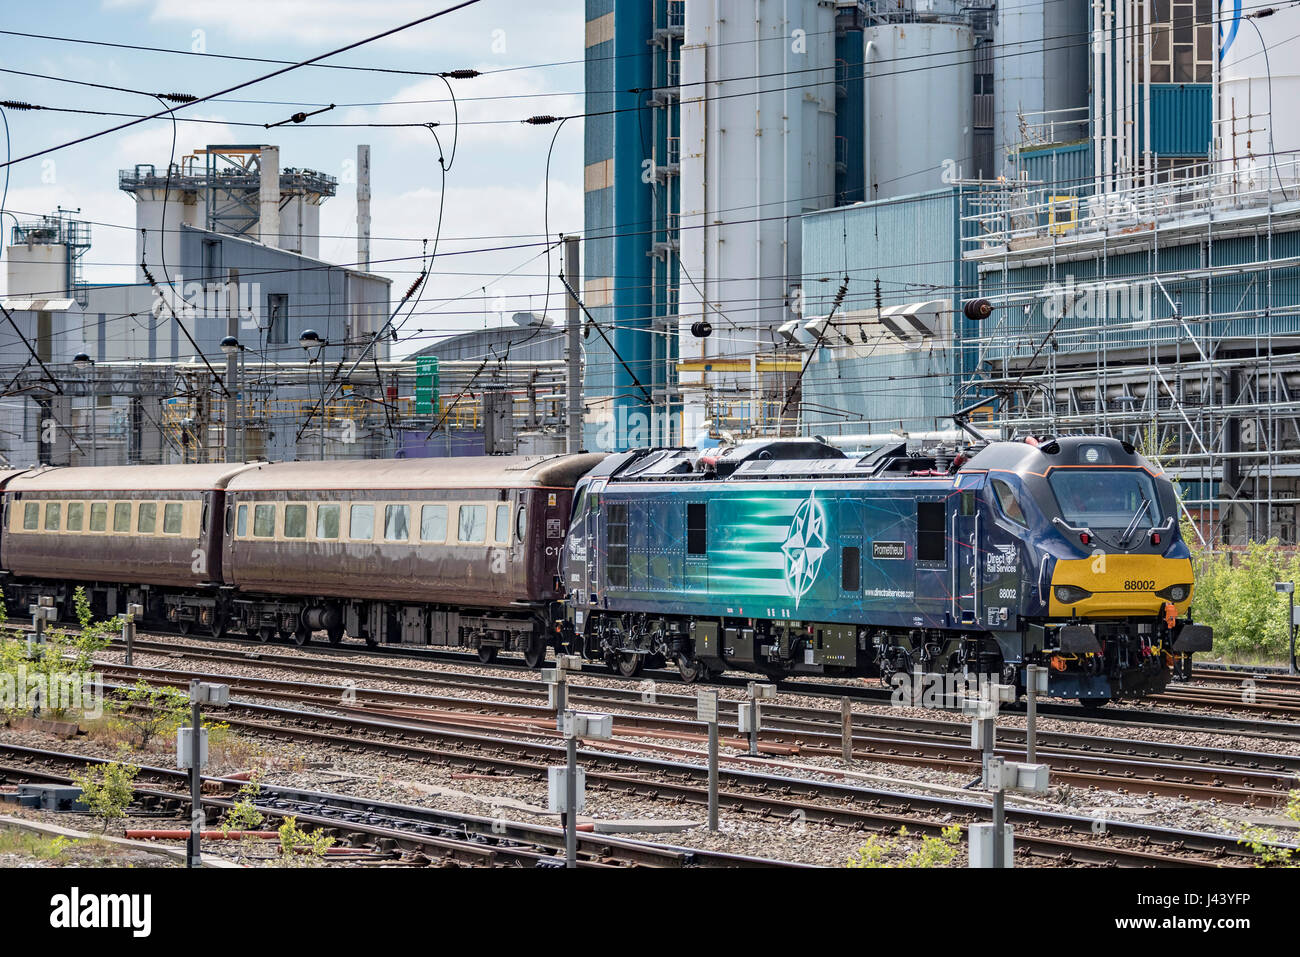 Warrington. UK. 09 May 2017. The Class 88 VIP Launch train the Belmond Northern Belle luxury rail tour from London - Stock Image